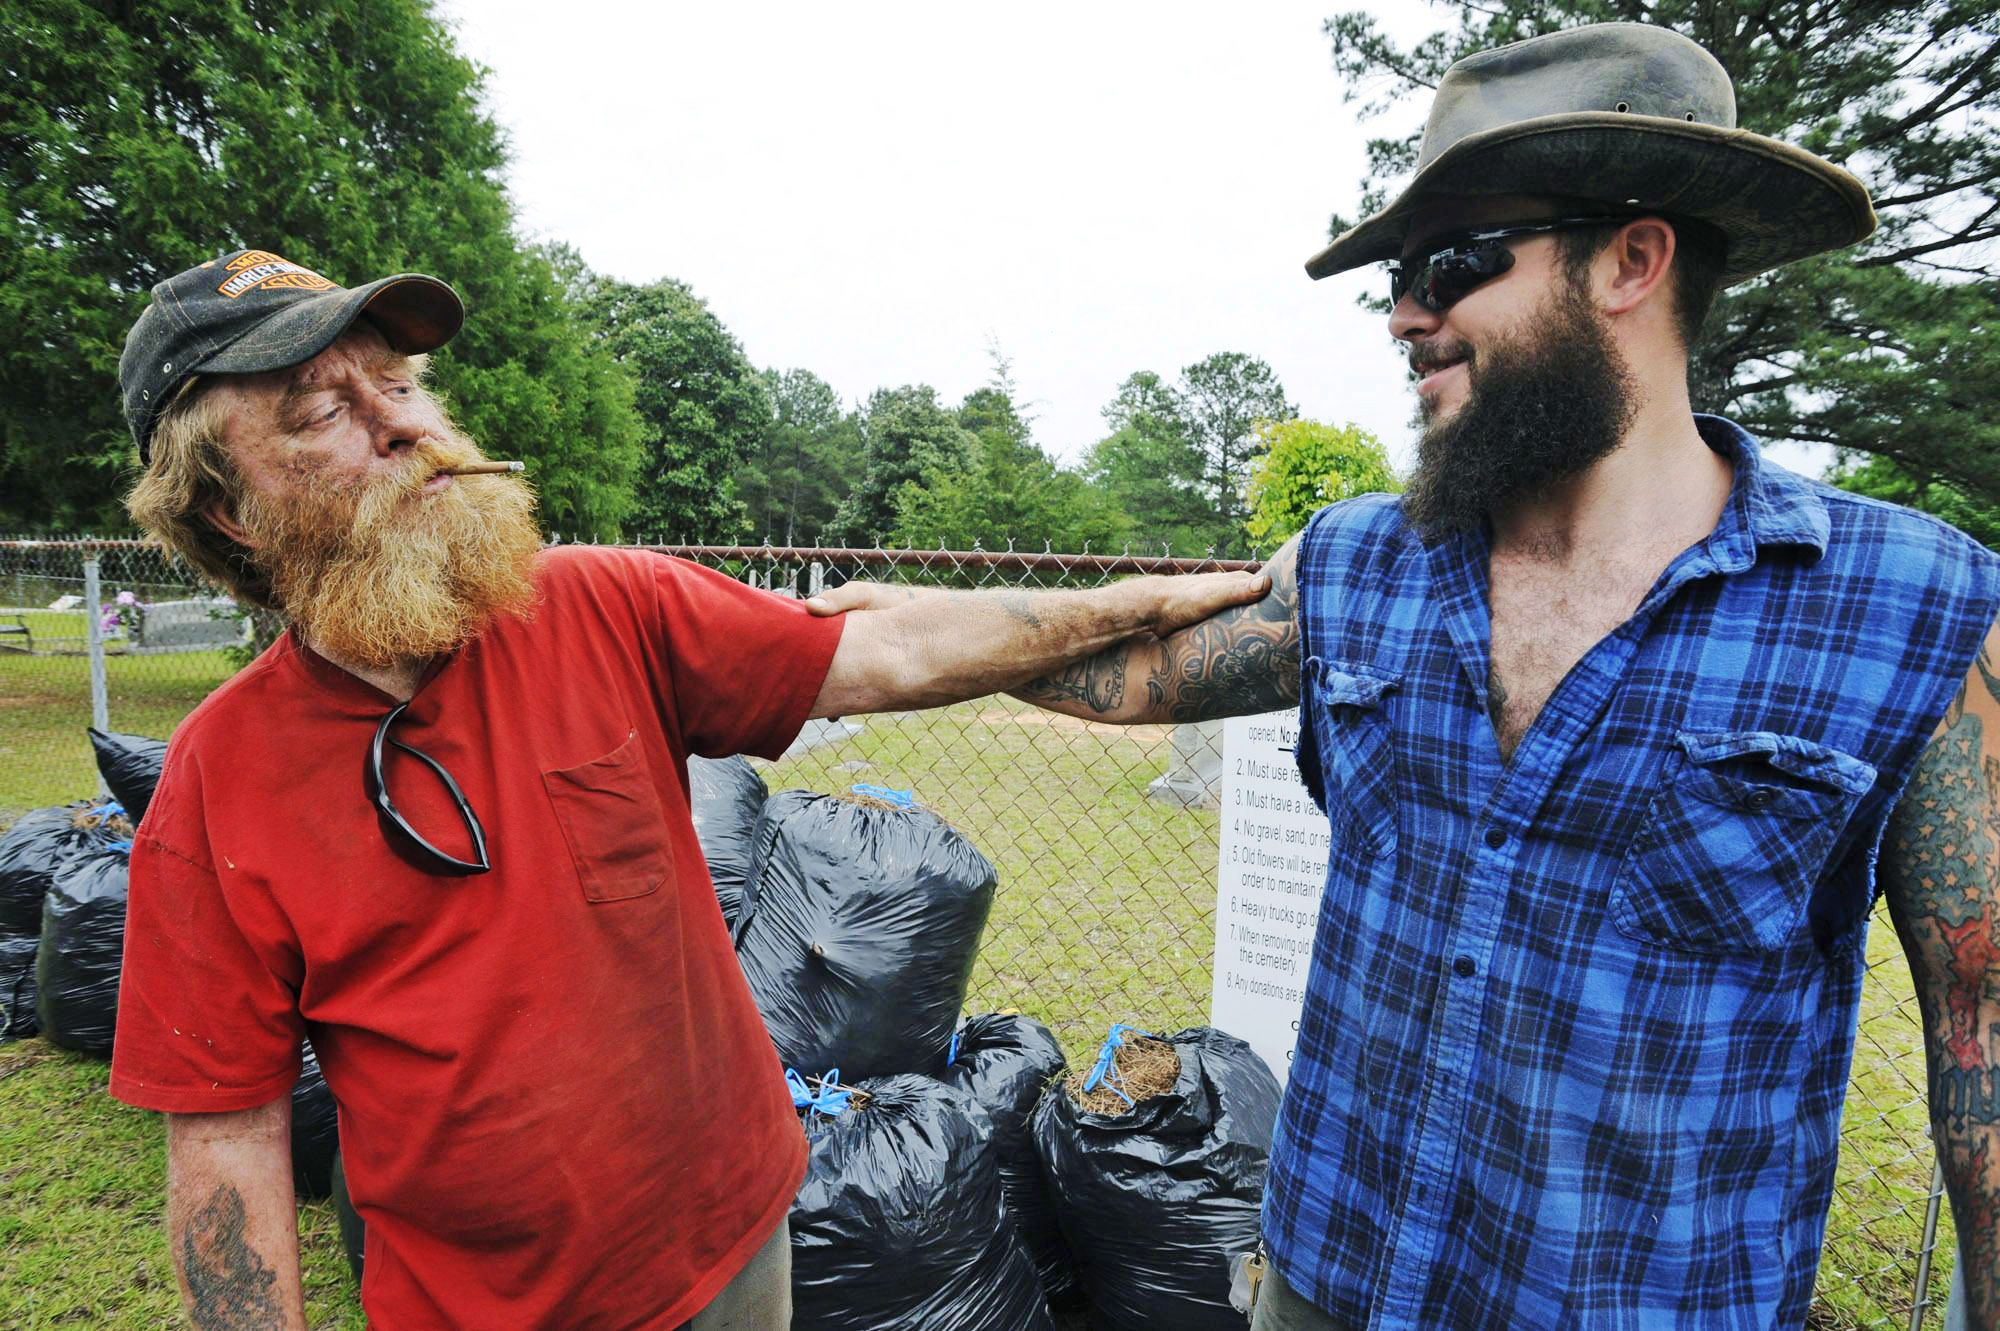 S Town One Year Later - Tyler Goodson Tells His Side Of the